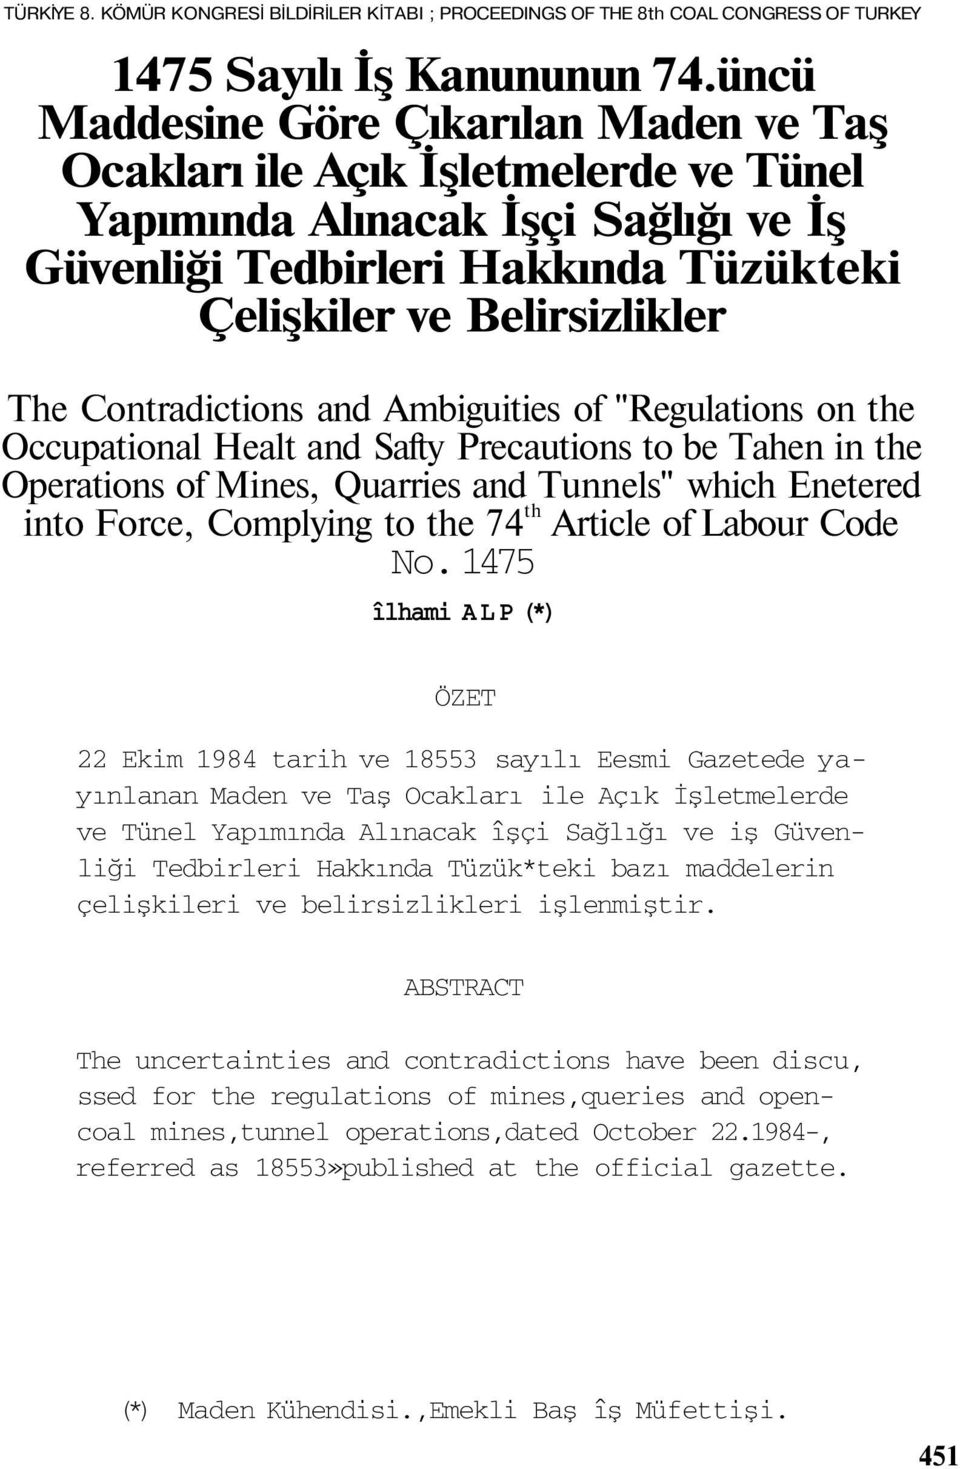 "Contradictions and Ambiguities of ""Regulations on the Occupational Healt and Safty Precautions to be Tahen in the Operations of Mines, Quarries and Tunnels"" which Enetered into Force, Complying to"